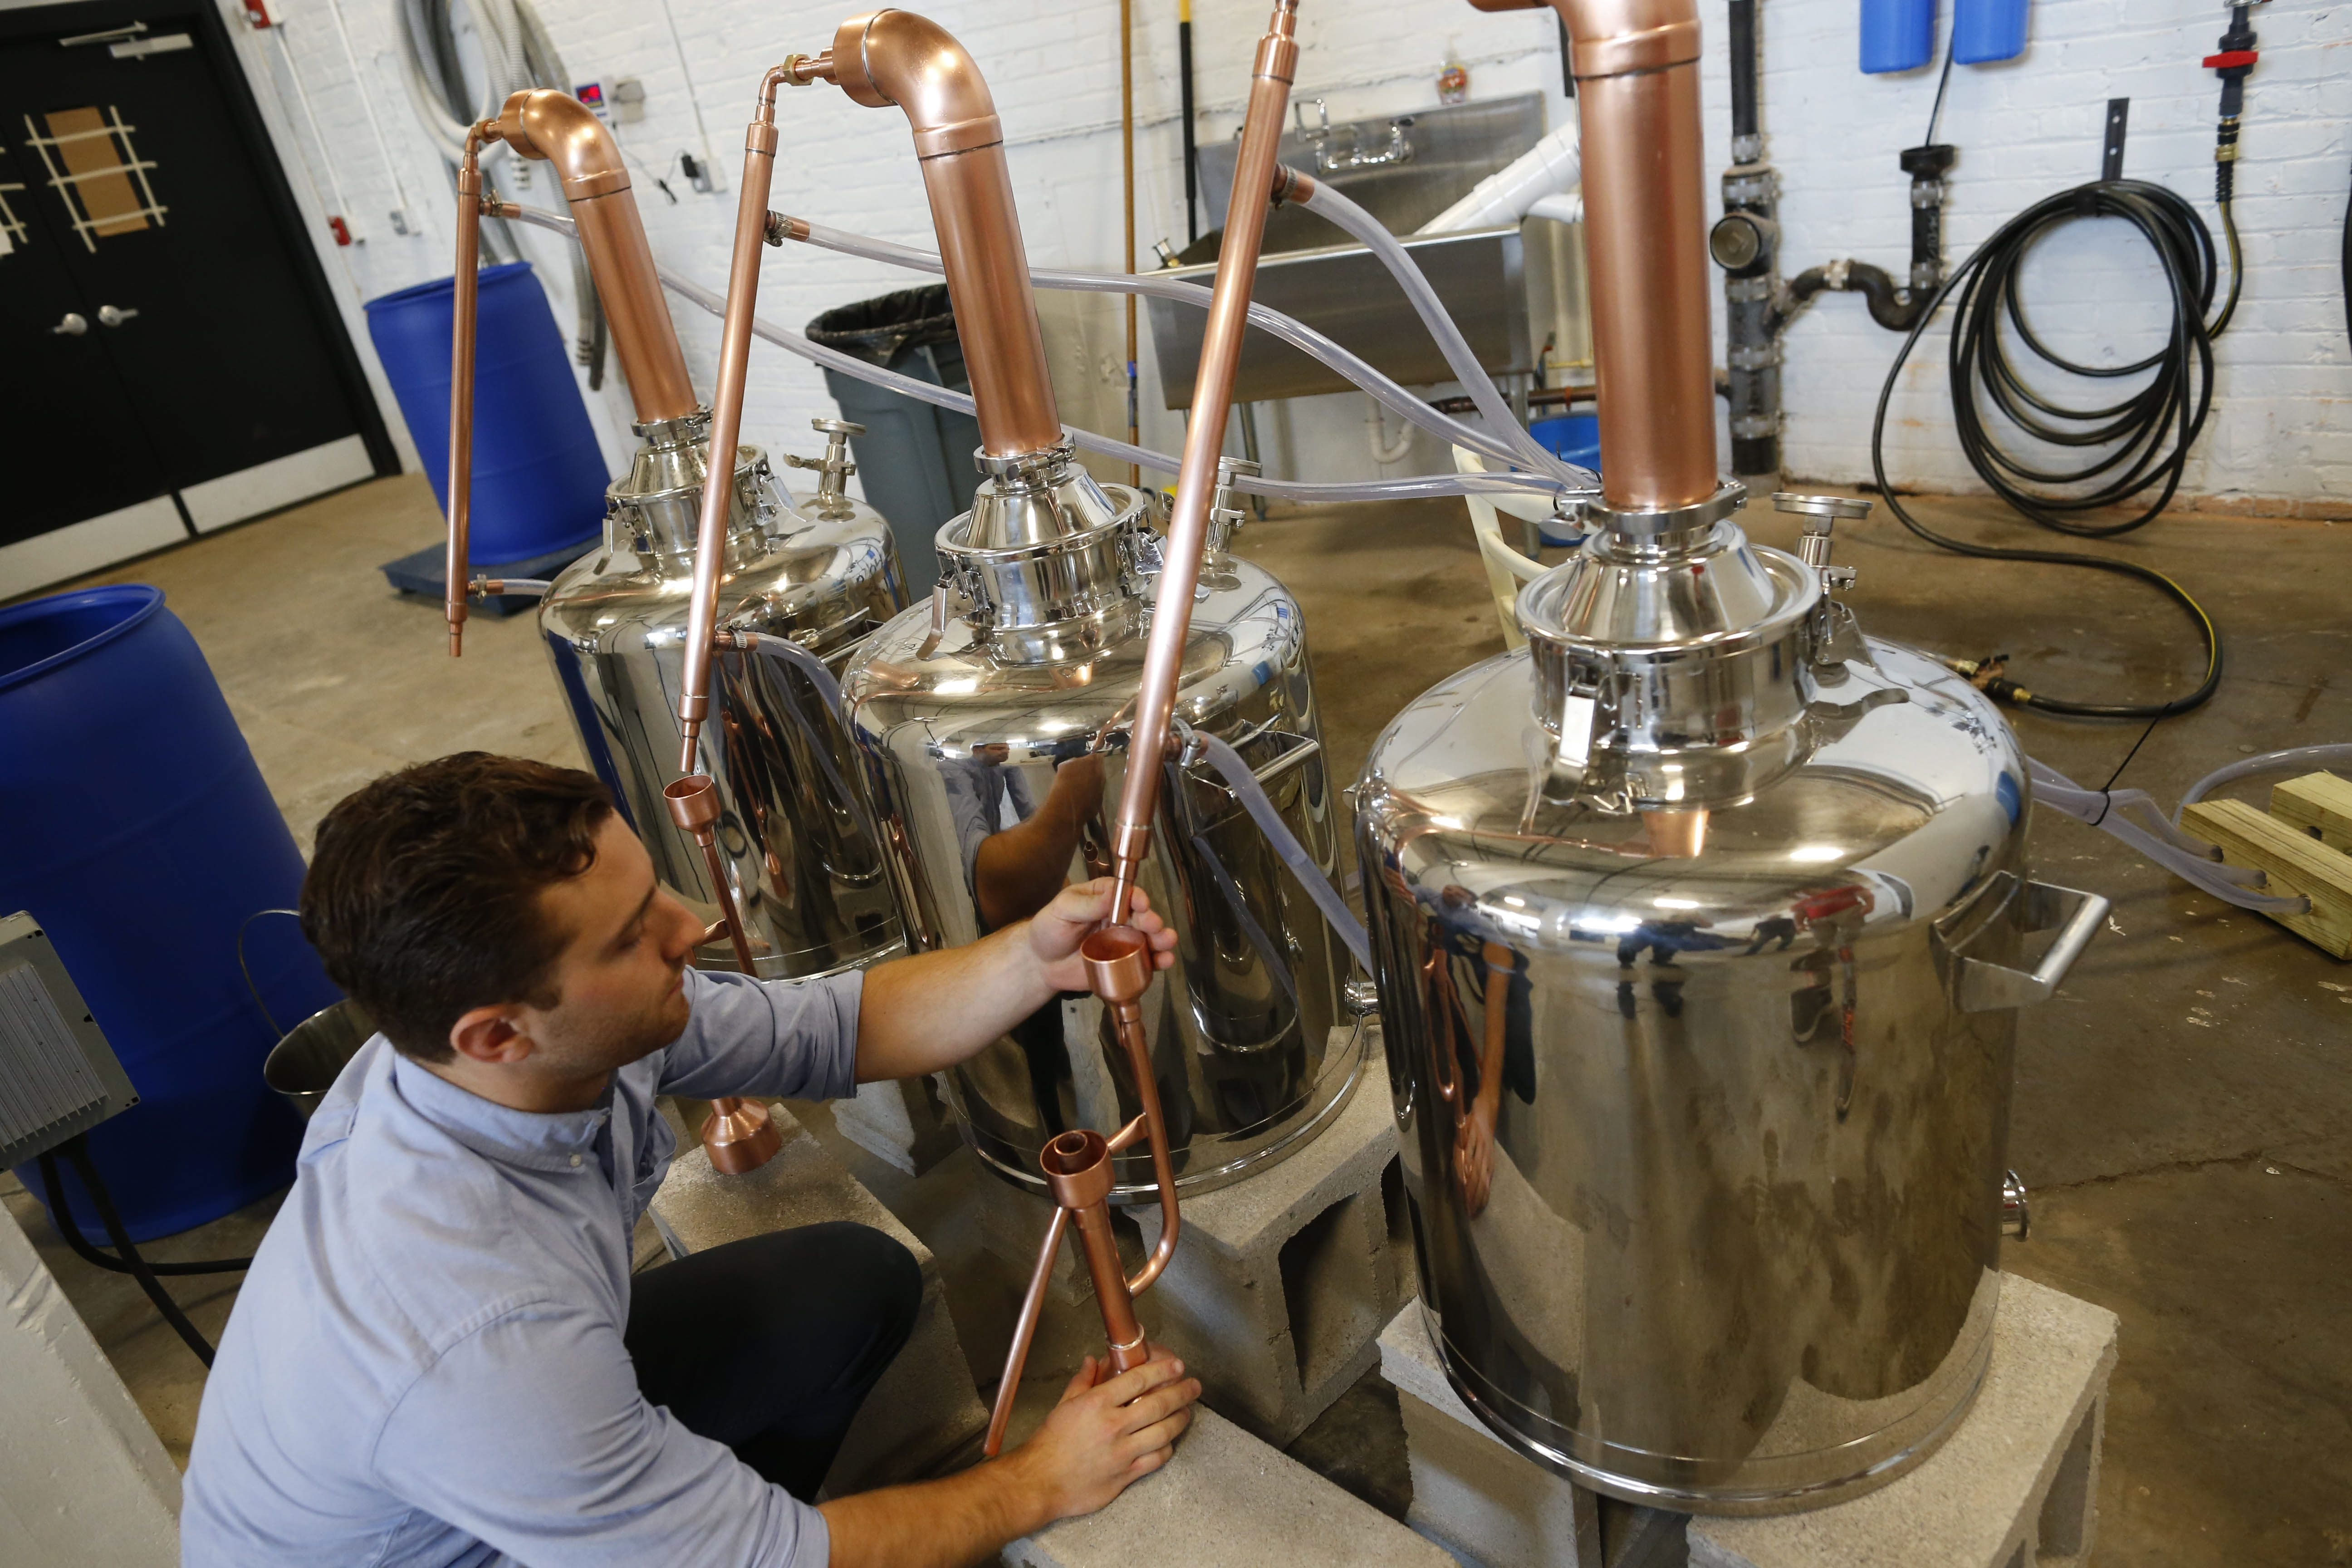 Robert Finan sets up some of the stills to make custom batches of gin, vodka and other spirits using all New York State ingredients at Tommyrotter.